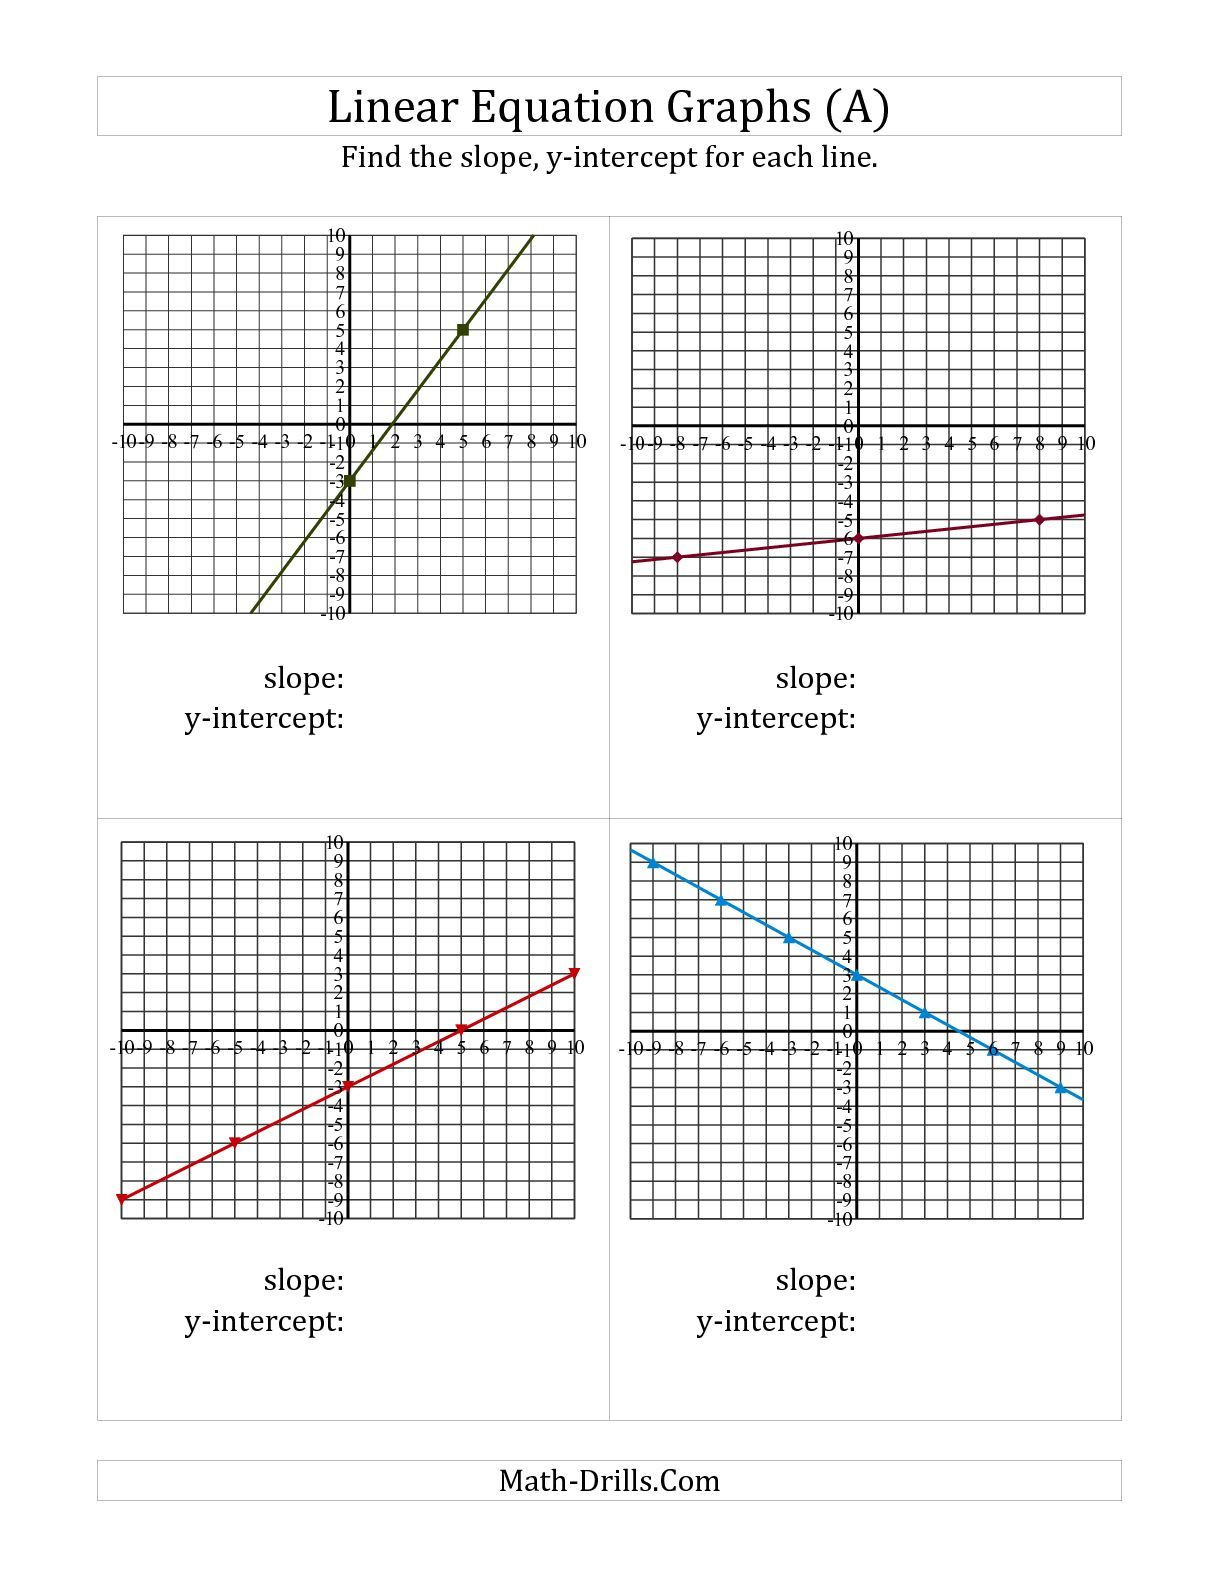 Graphing Trig Functions Practice Worksheet the Finding Slope and Y Intercept From A Linear Equation